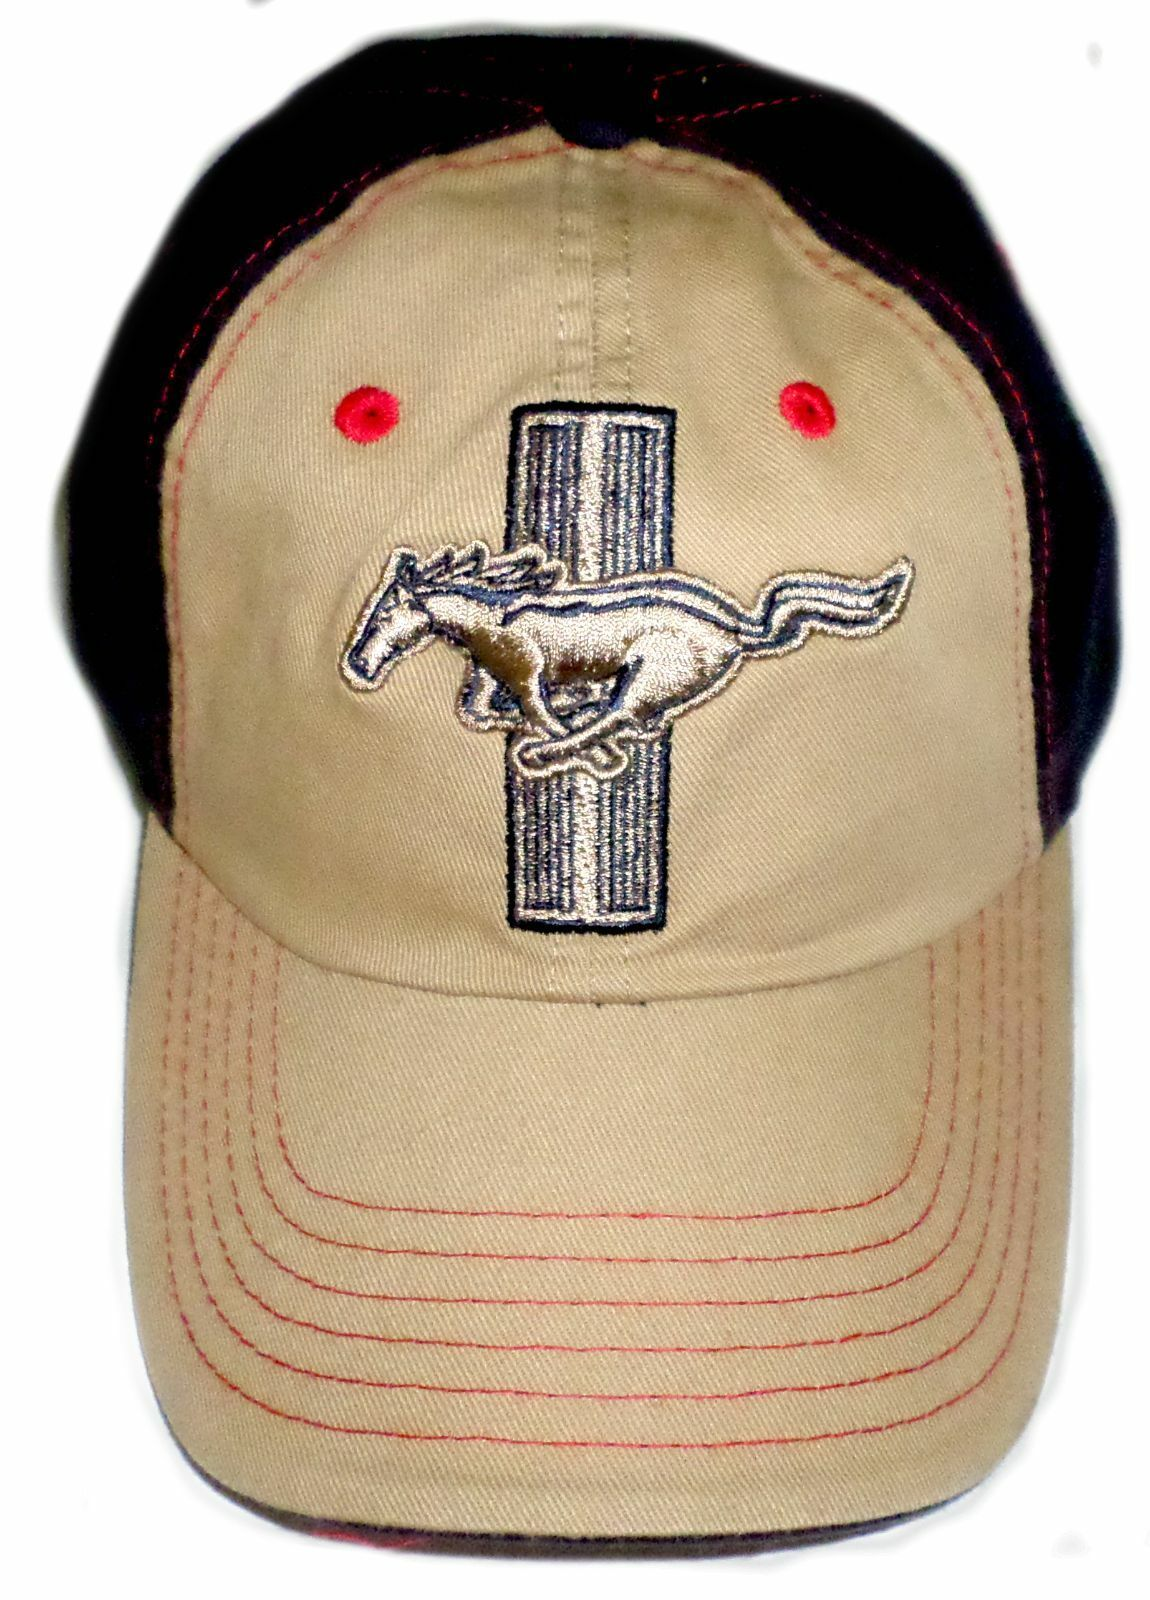 Ford Mustang 2016 Men's Blue & Tan Hat Adjustable CFS -